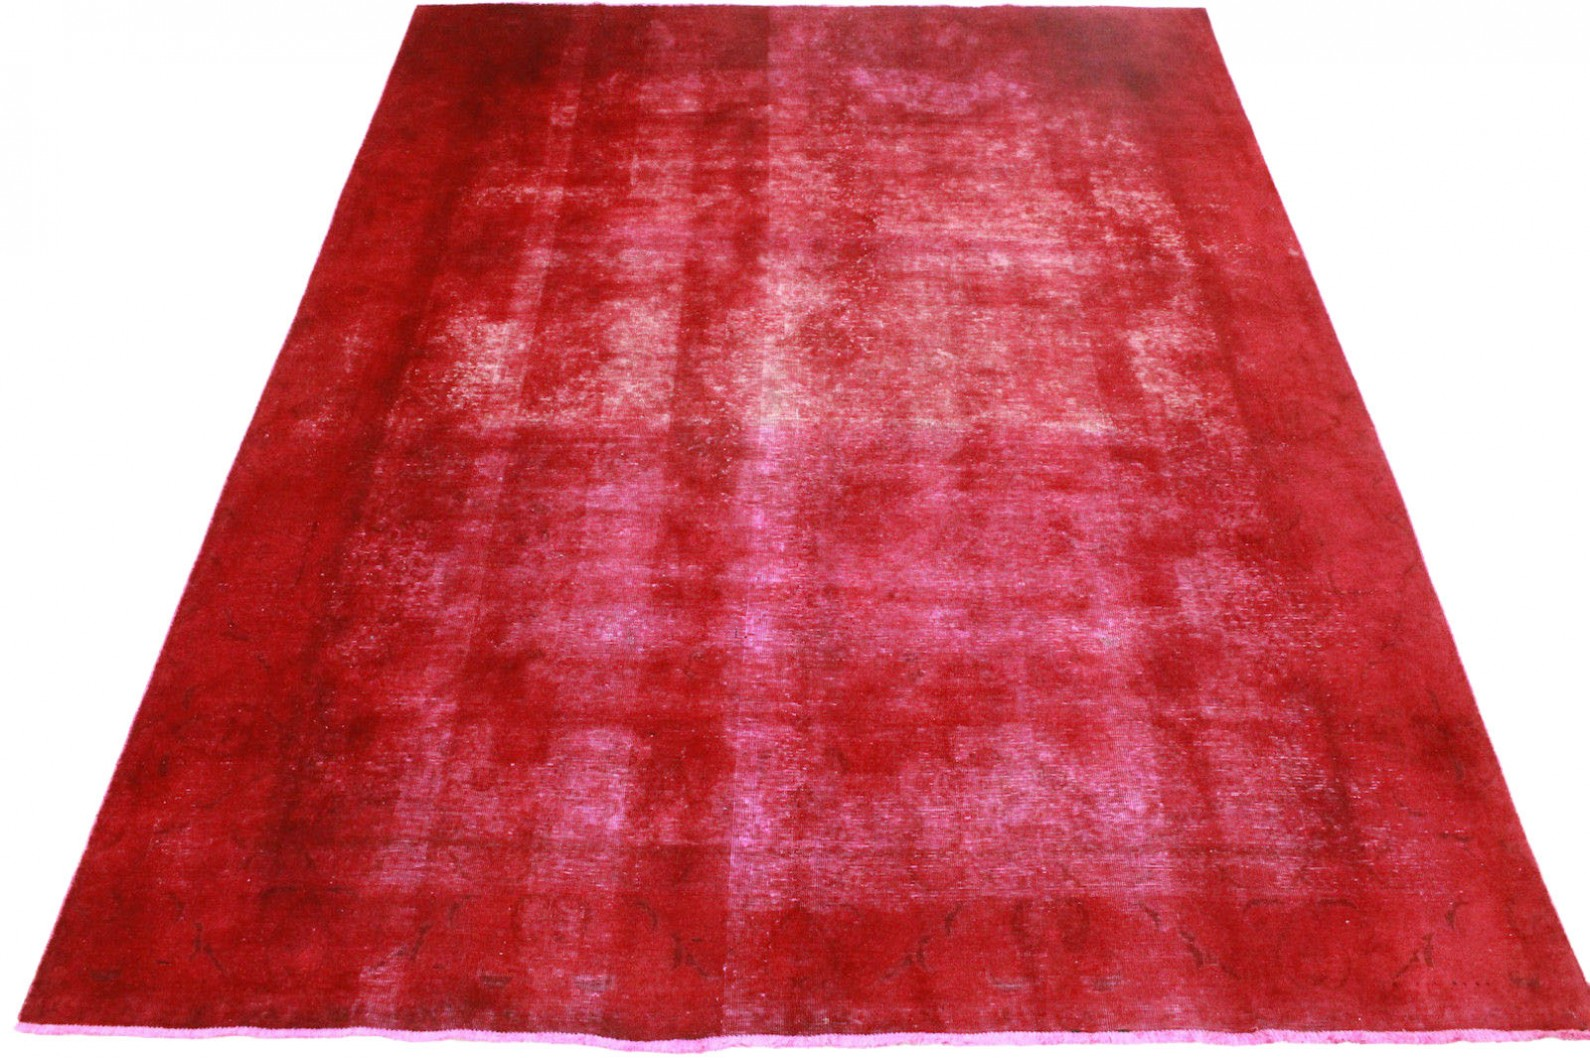 Vintage Teppich Rot in 370x270cm (1 / 5)